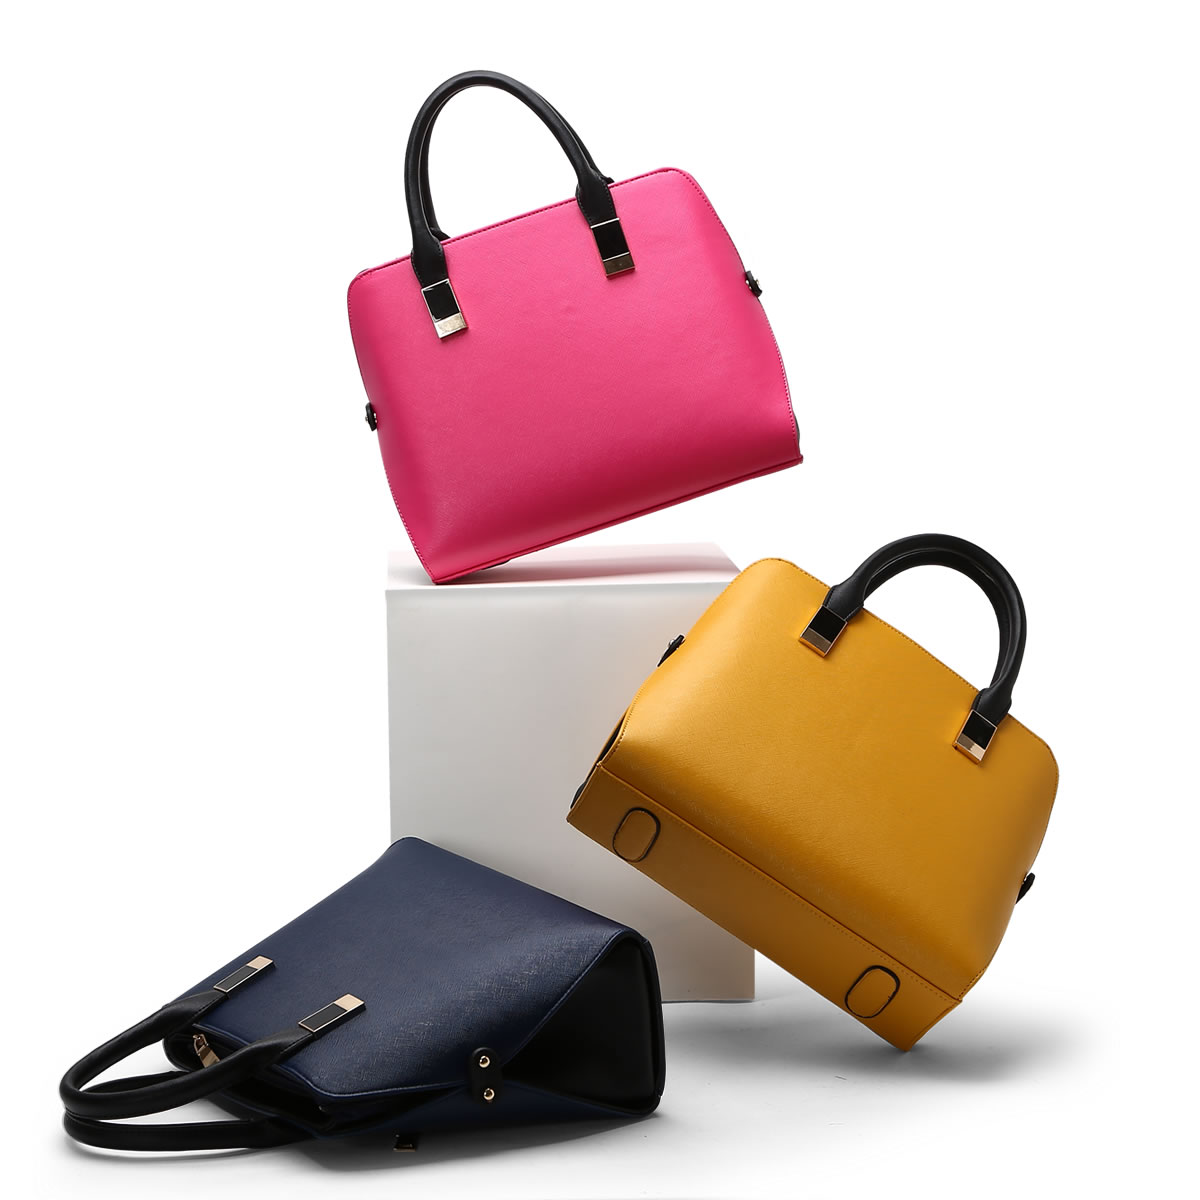 cheap wholesale handbags skull handbags wholesale jessica simpson handbags wholesale